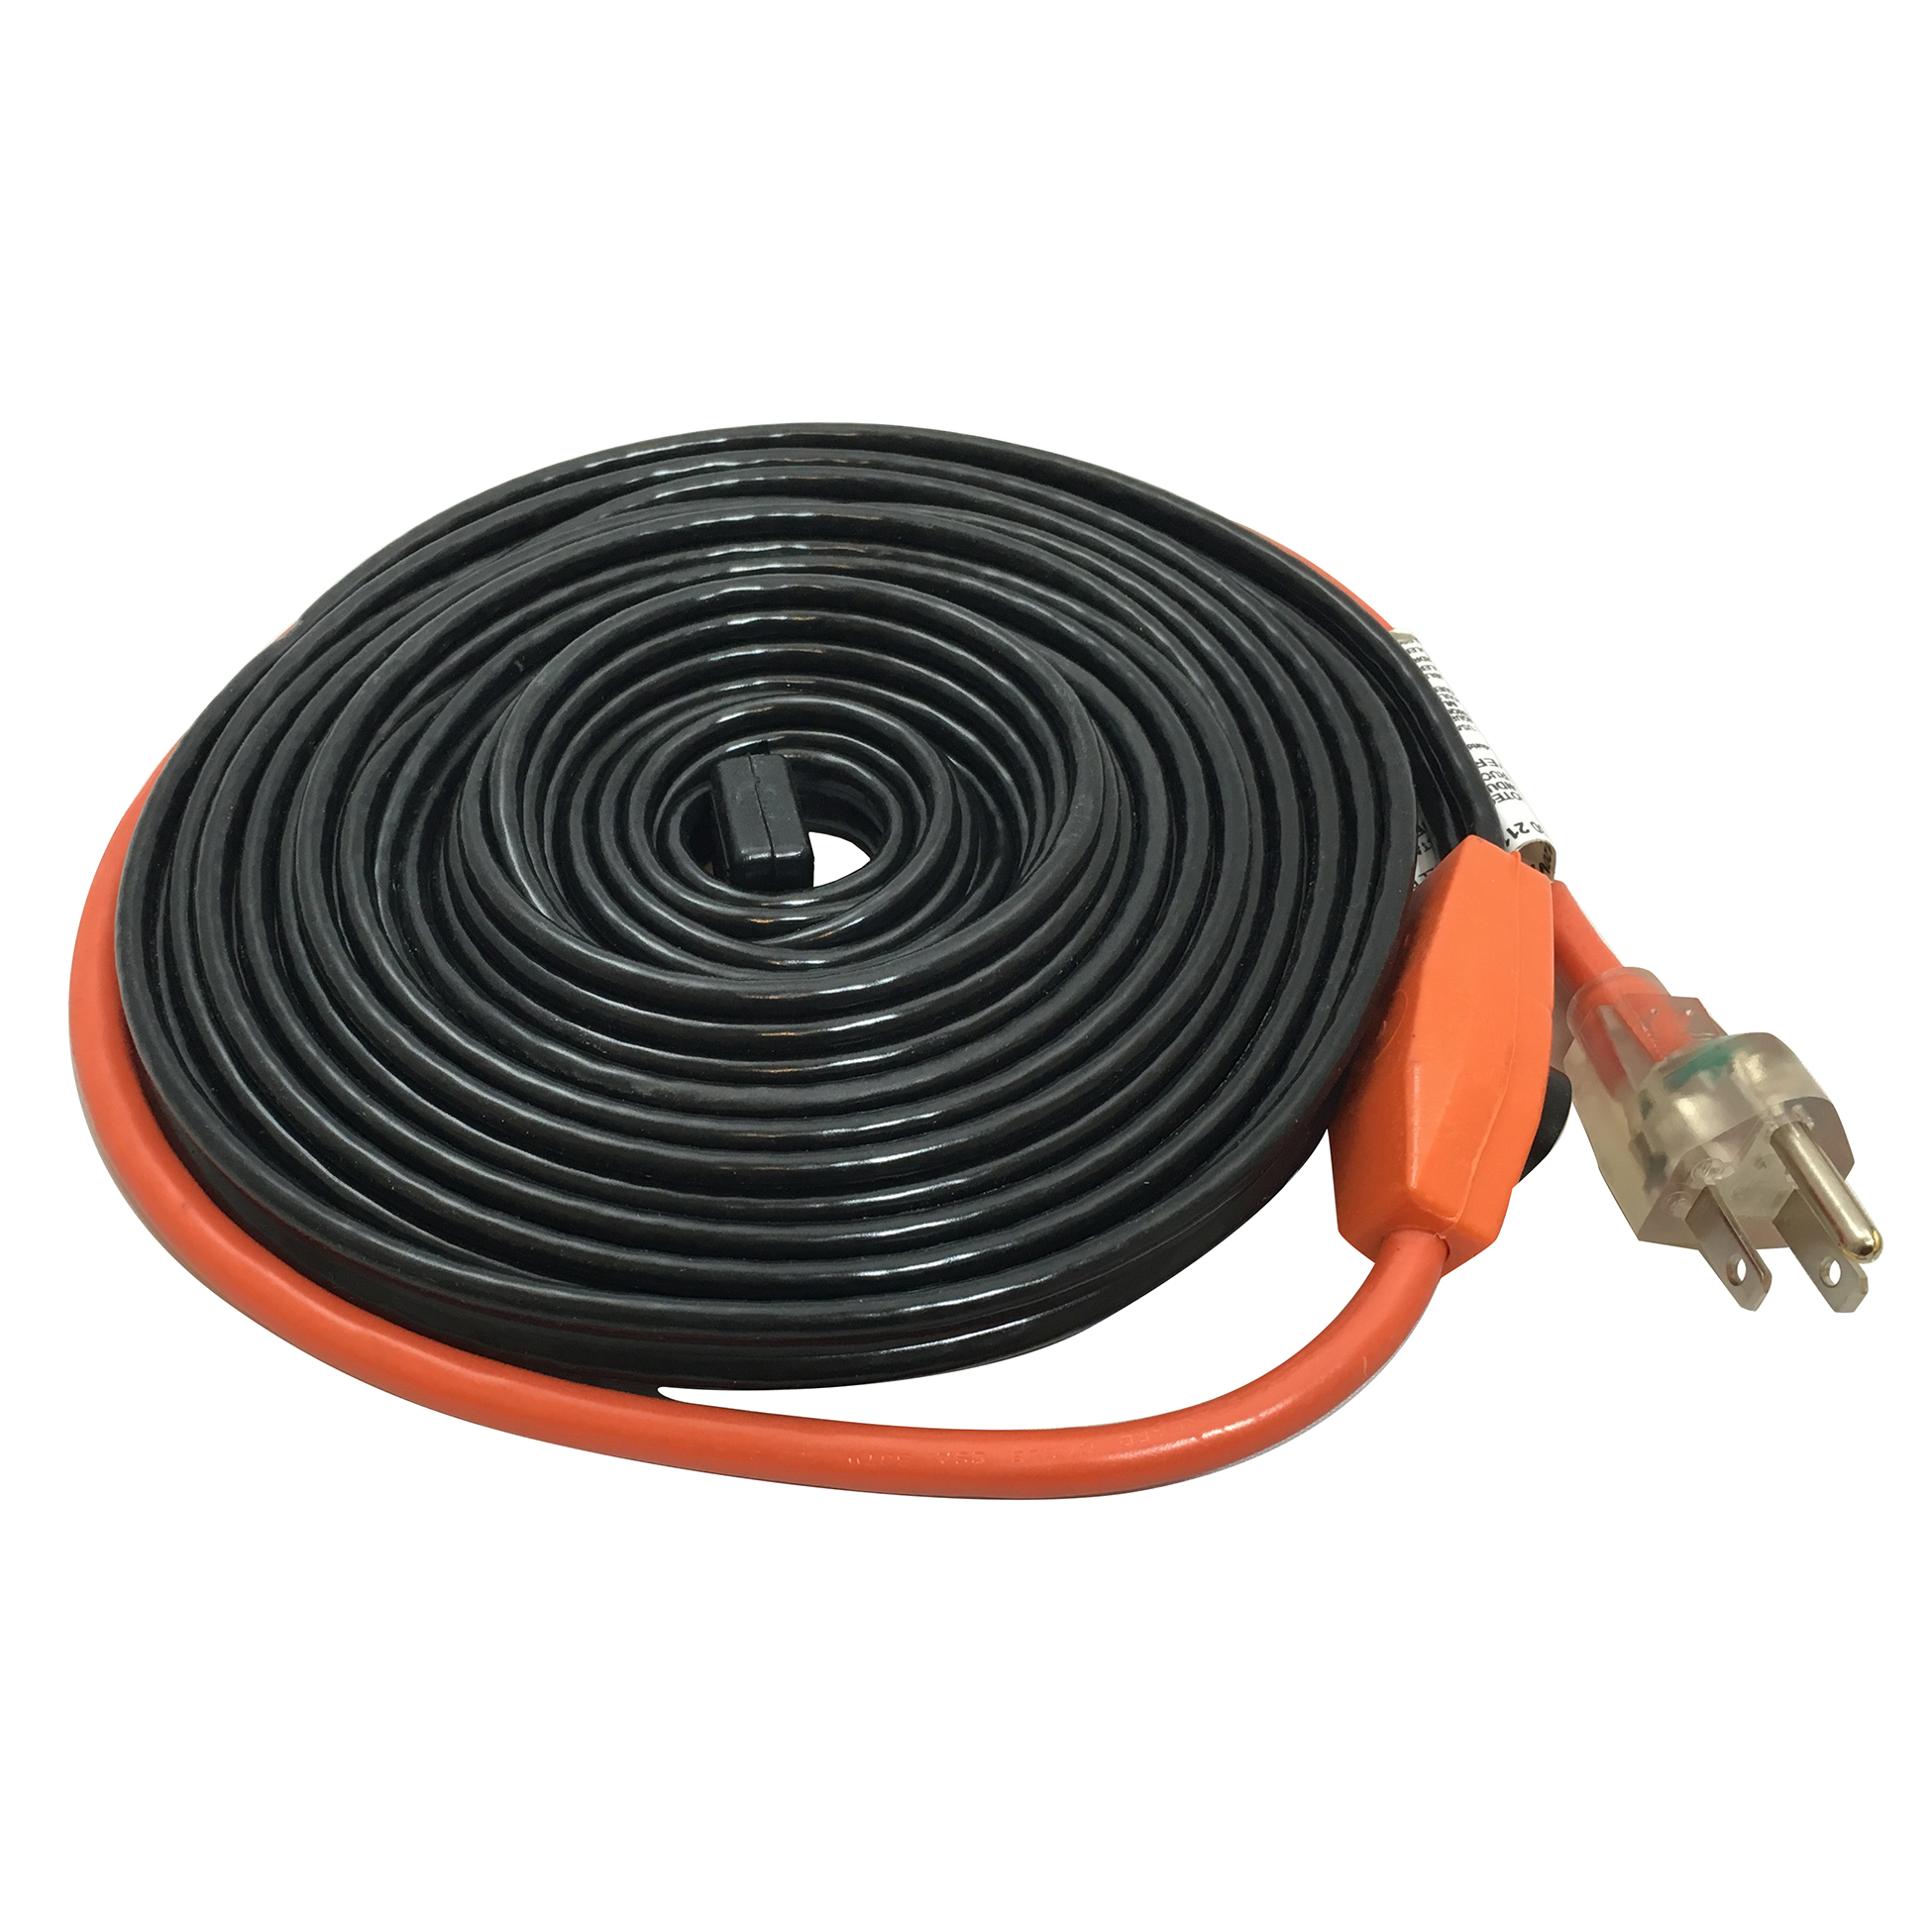 Frost King HC30A 30' 210 Watts Automatic Electric Pipe Heat Cable Kit